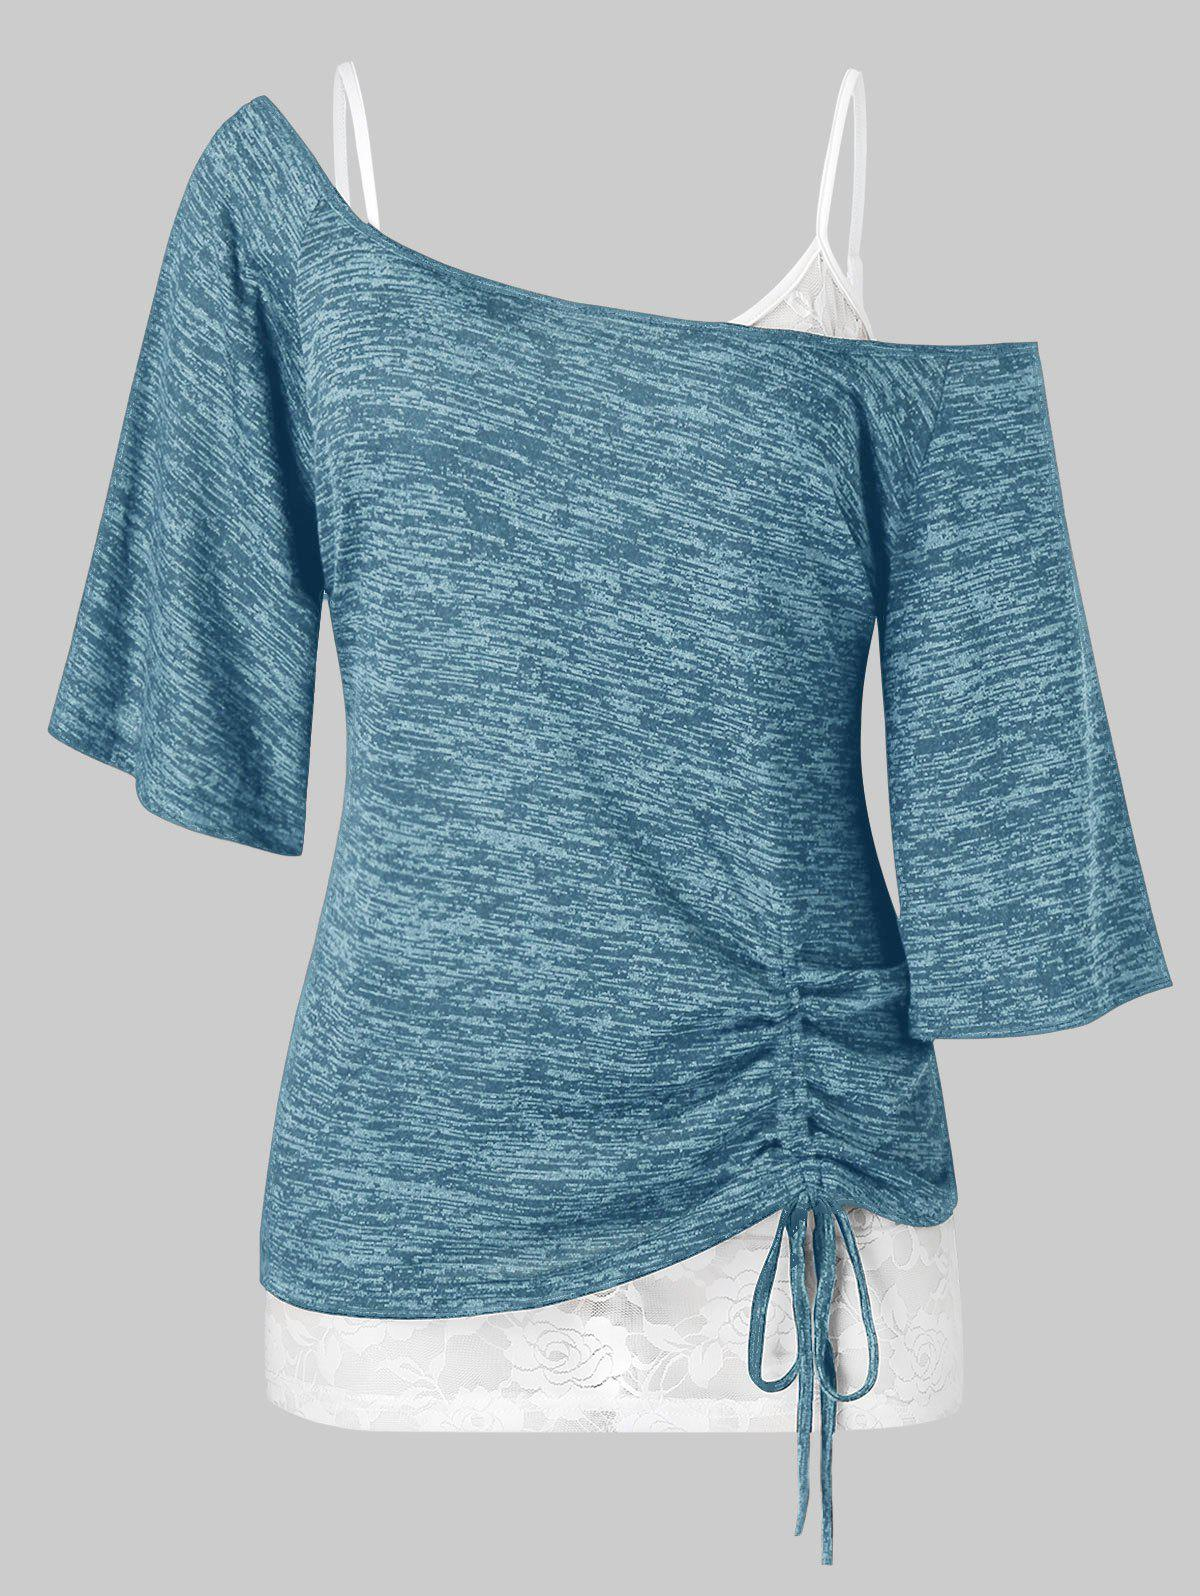 Plus Size Skew Collar Cinched Tee and Lace Cami Top Set - BLUE IVY 3X